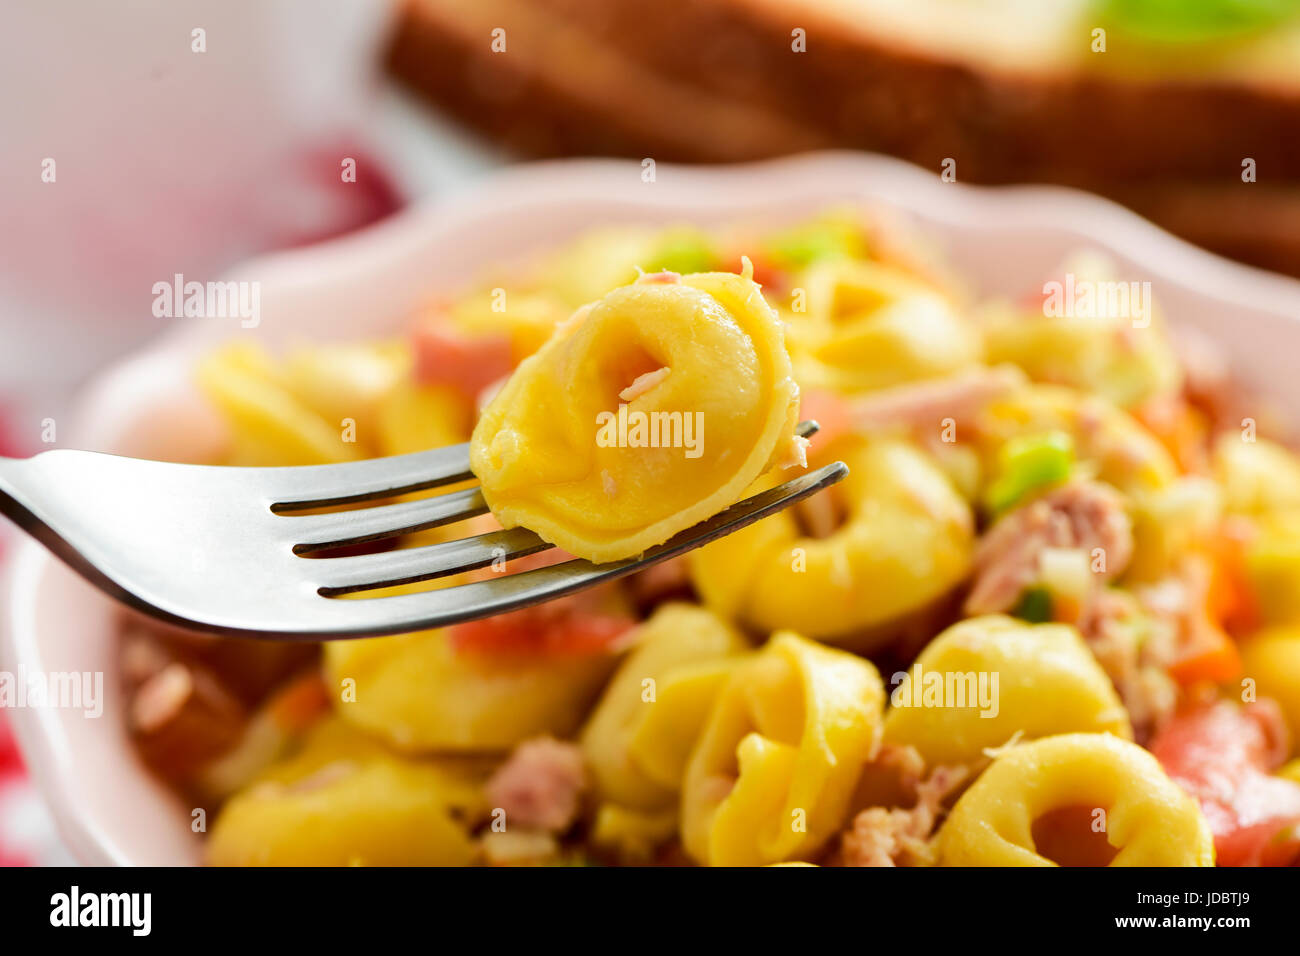 closeup of a ceramic bowl with a pasta salad made with tortellini on a table set for lunch or dinner - Stock Image